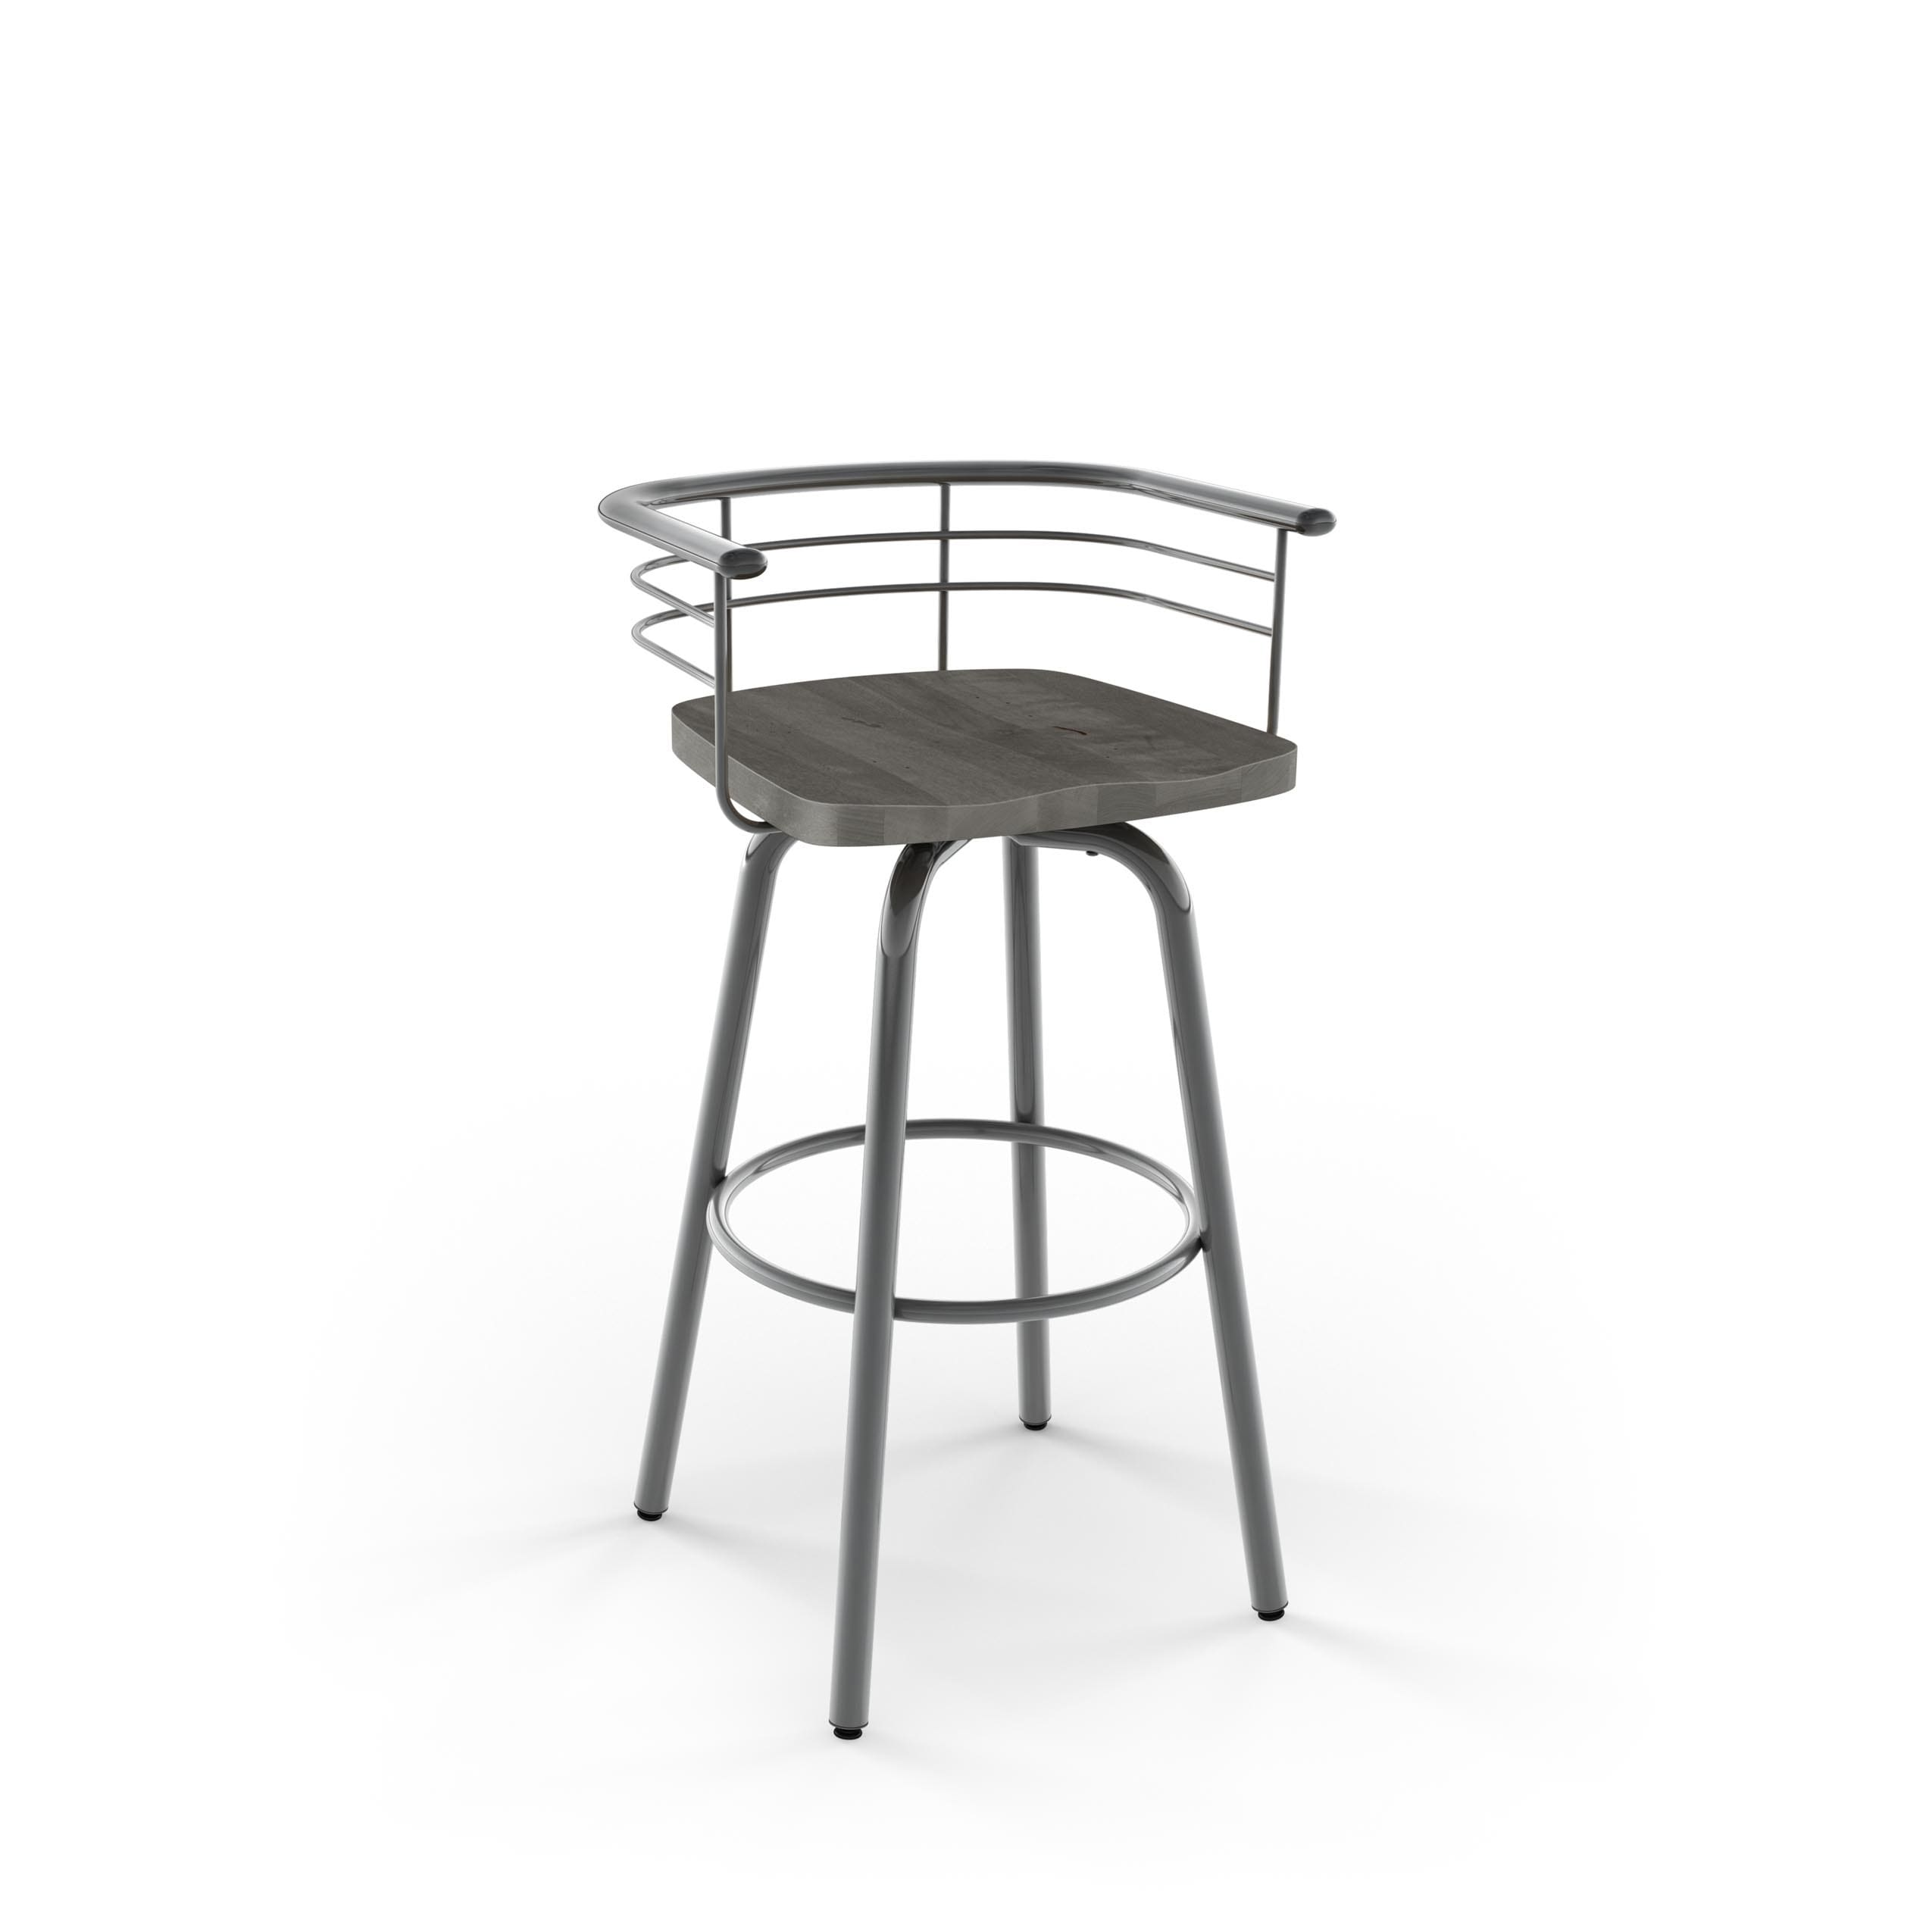 Swell Carbon Loft Cantrell Swivel Metal Counter Stool With Distressed Wood Seat Unemploymentrelief Wooden Chair Designs For Living Room Unemploymentrelieforg